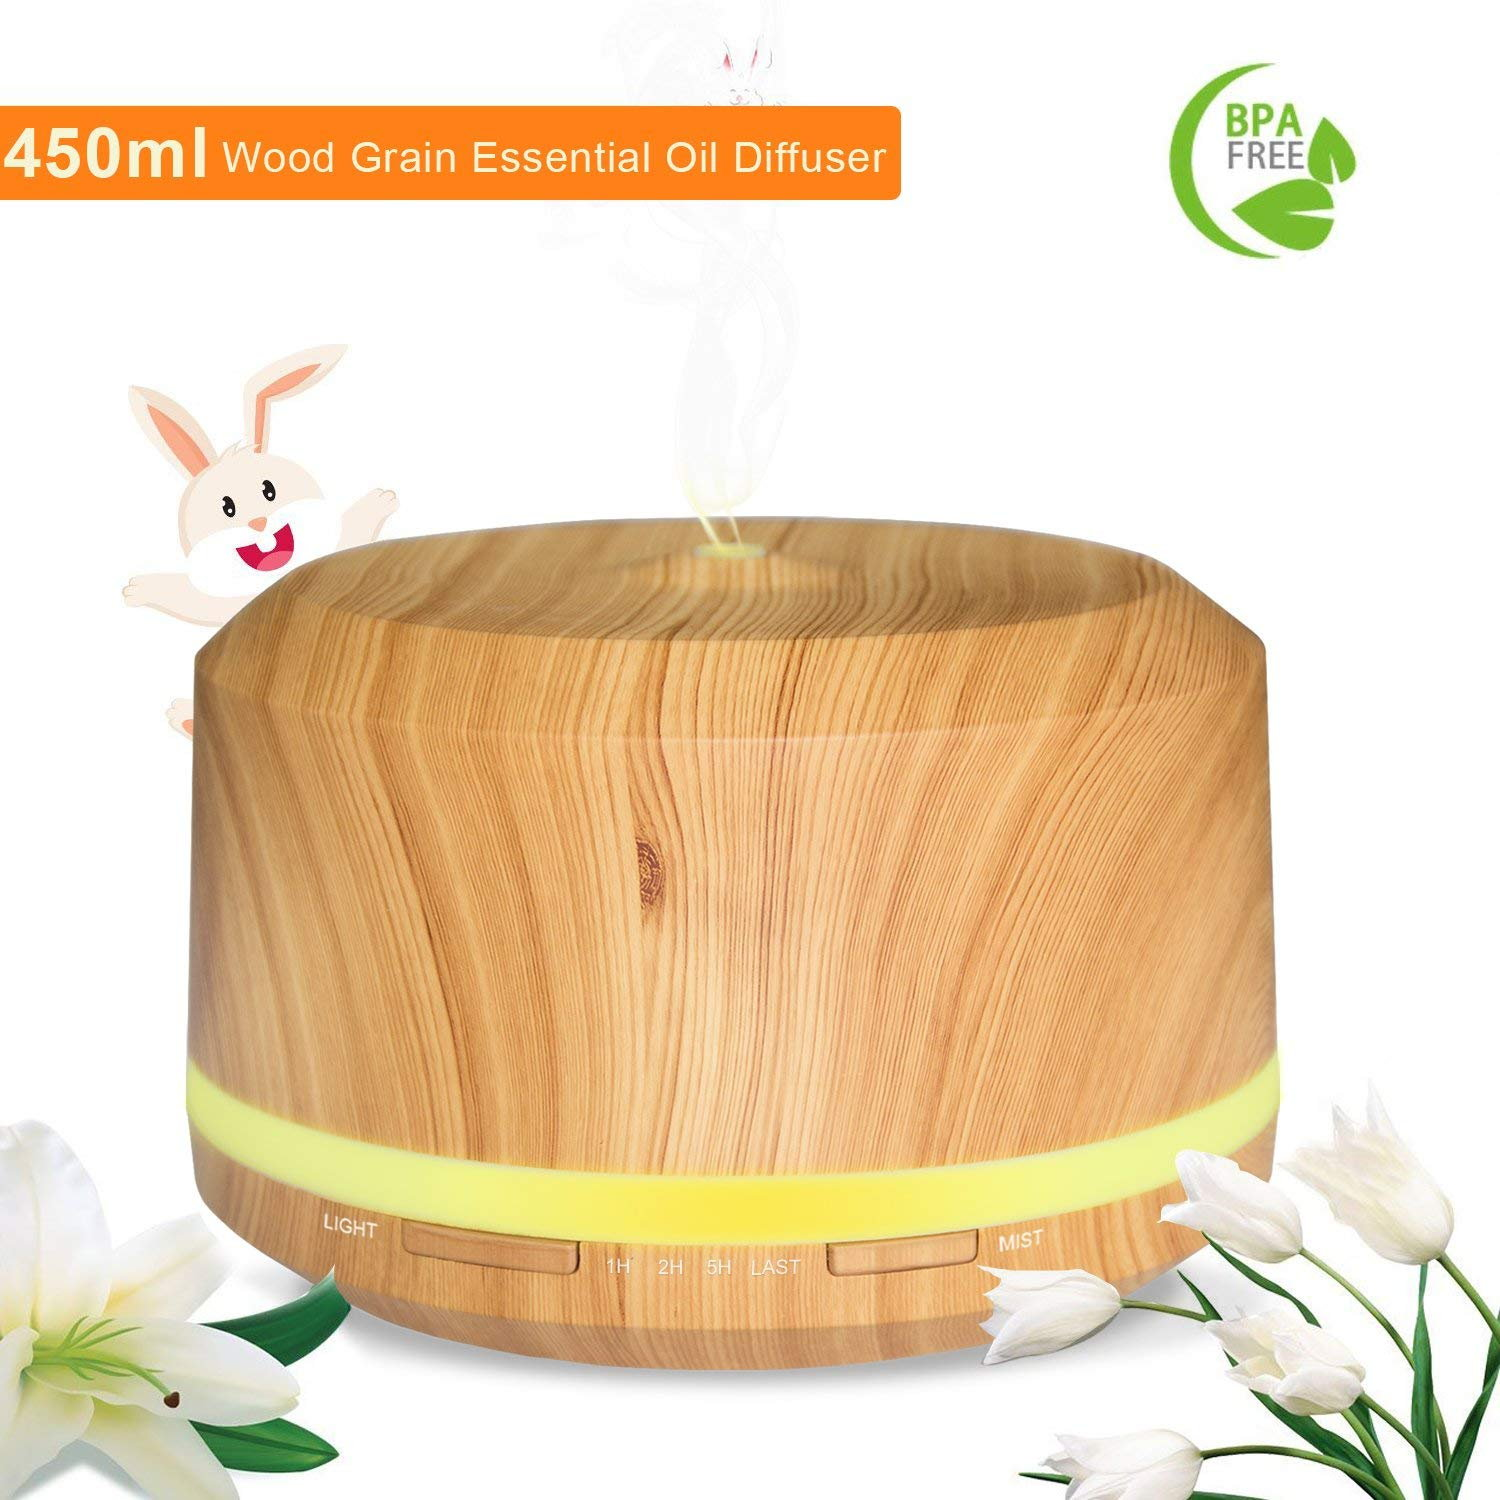 Humidificador 450ml solo 10,9€